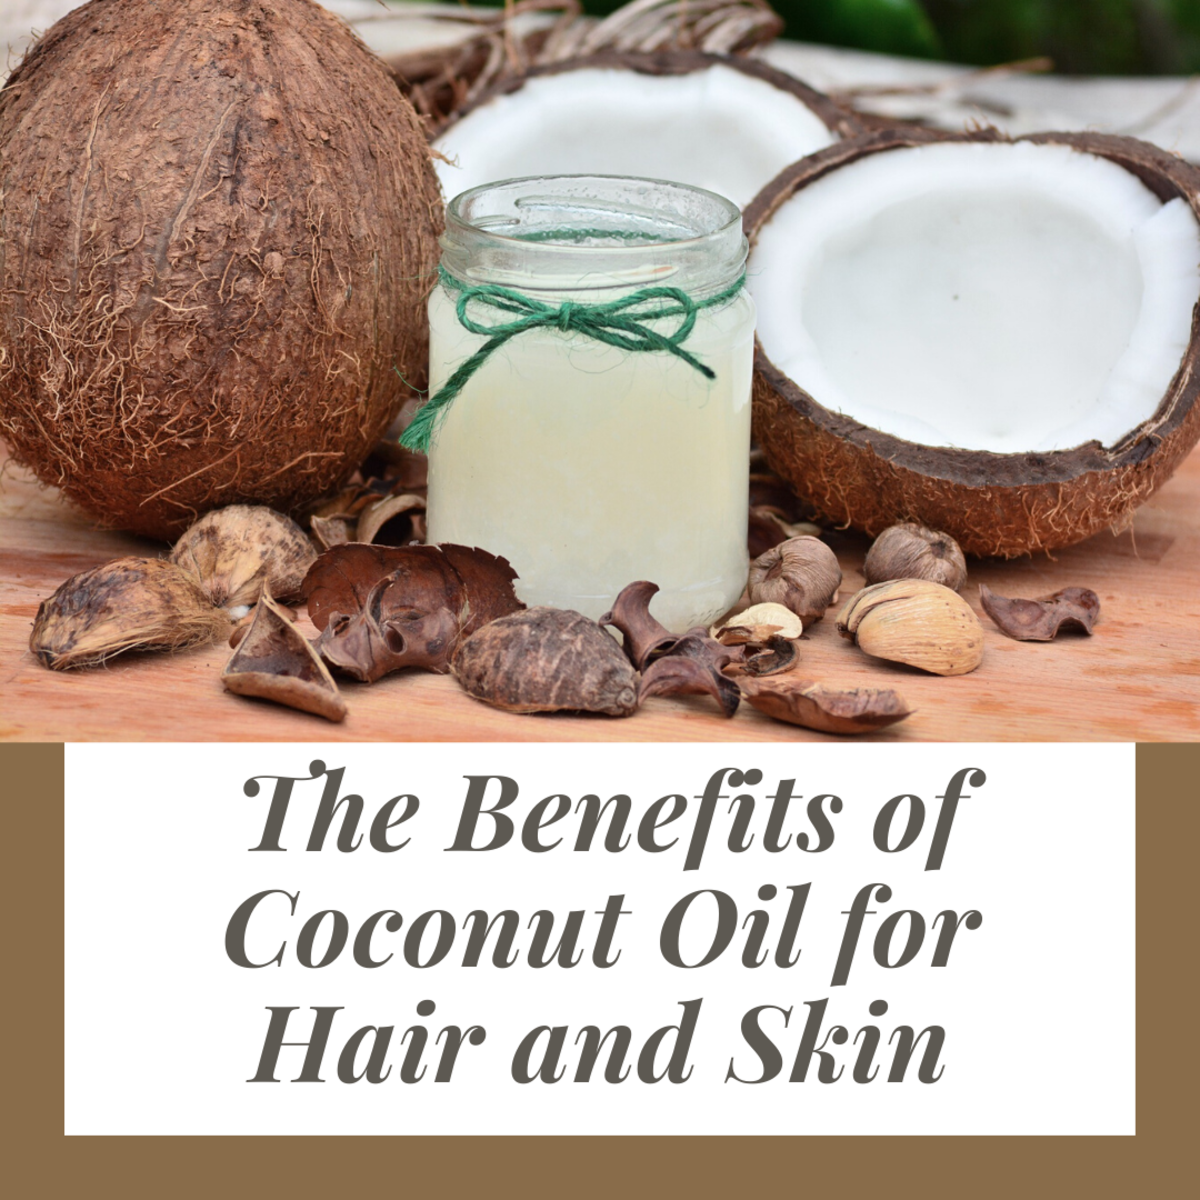 The Benefits of Using Coconut Oil on Your Skin and Hair